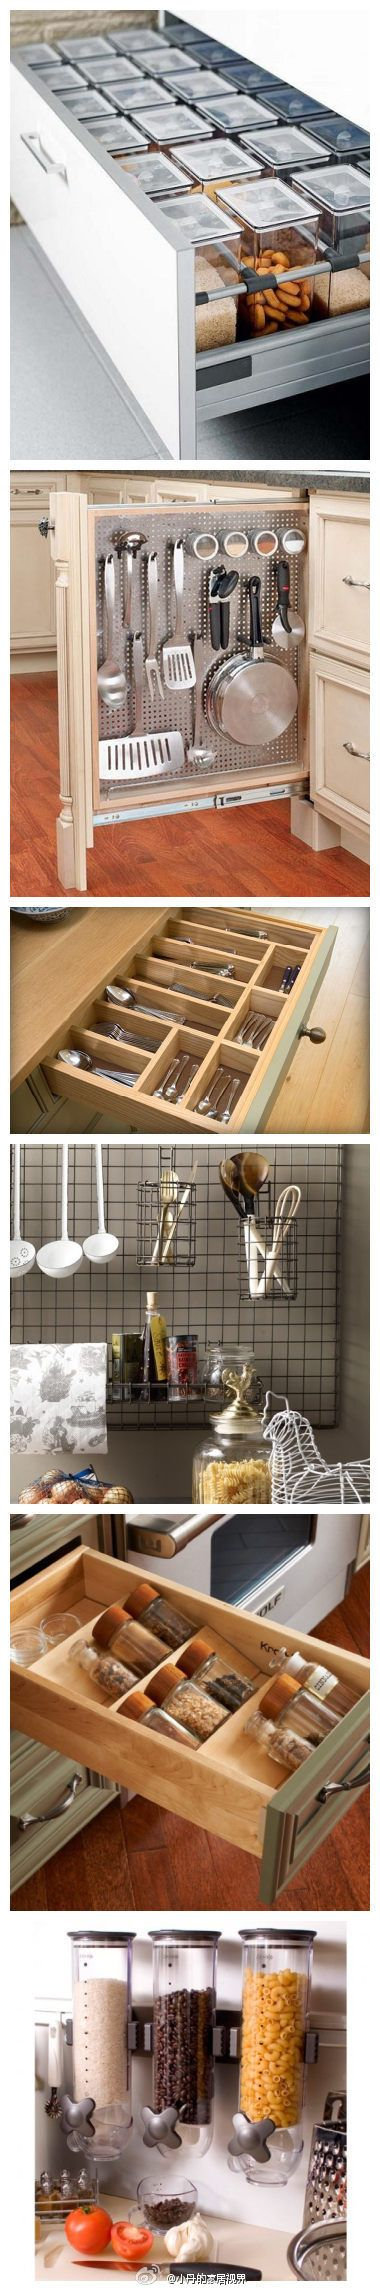 Kitchen storage systems | CostMad do not sell this idea/product. Please visit our blog for more funky ideas